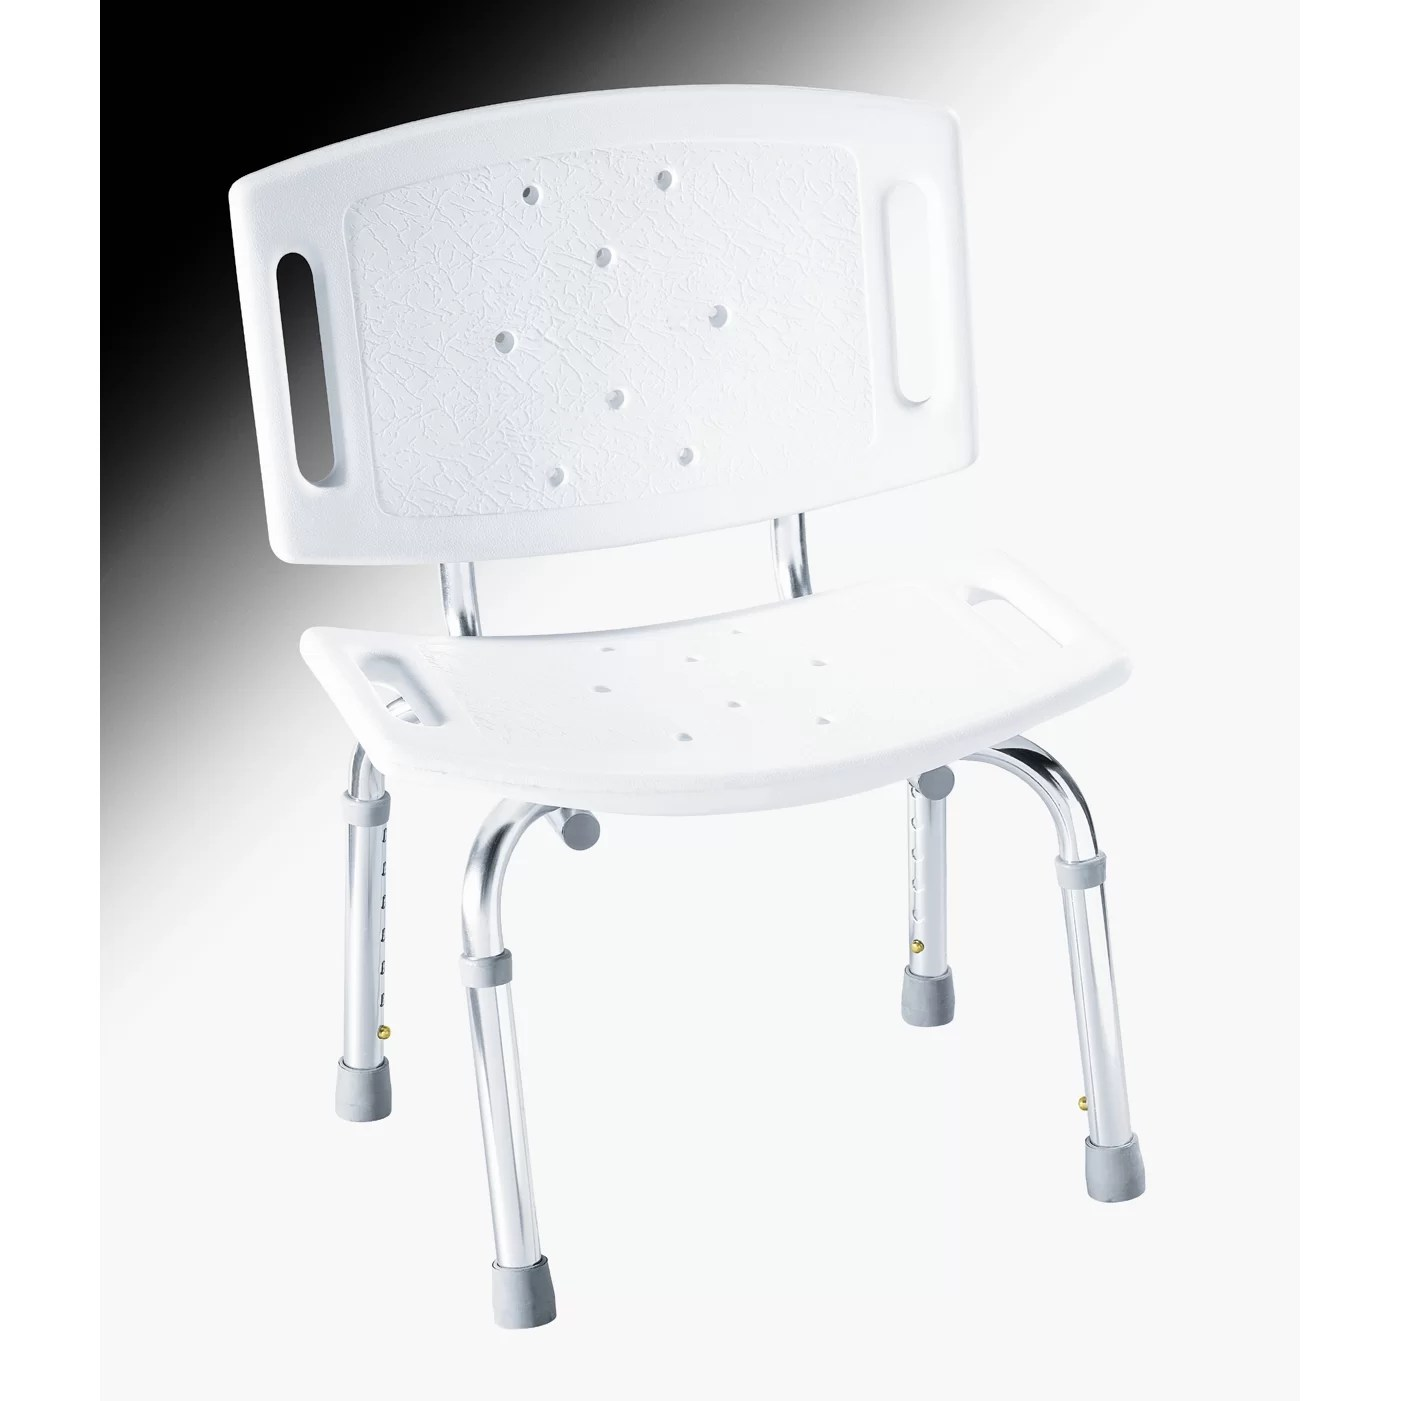 Moen Shower Chair Homecare By Moen Home Care Adjustable Tub Shower Chair